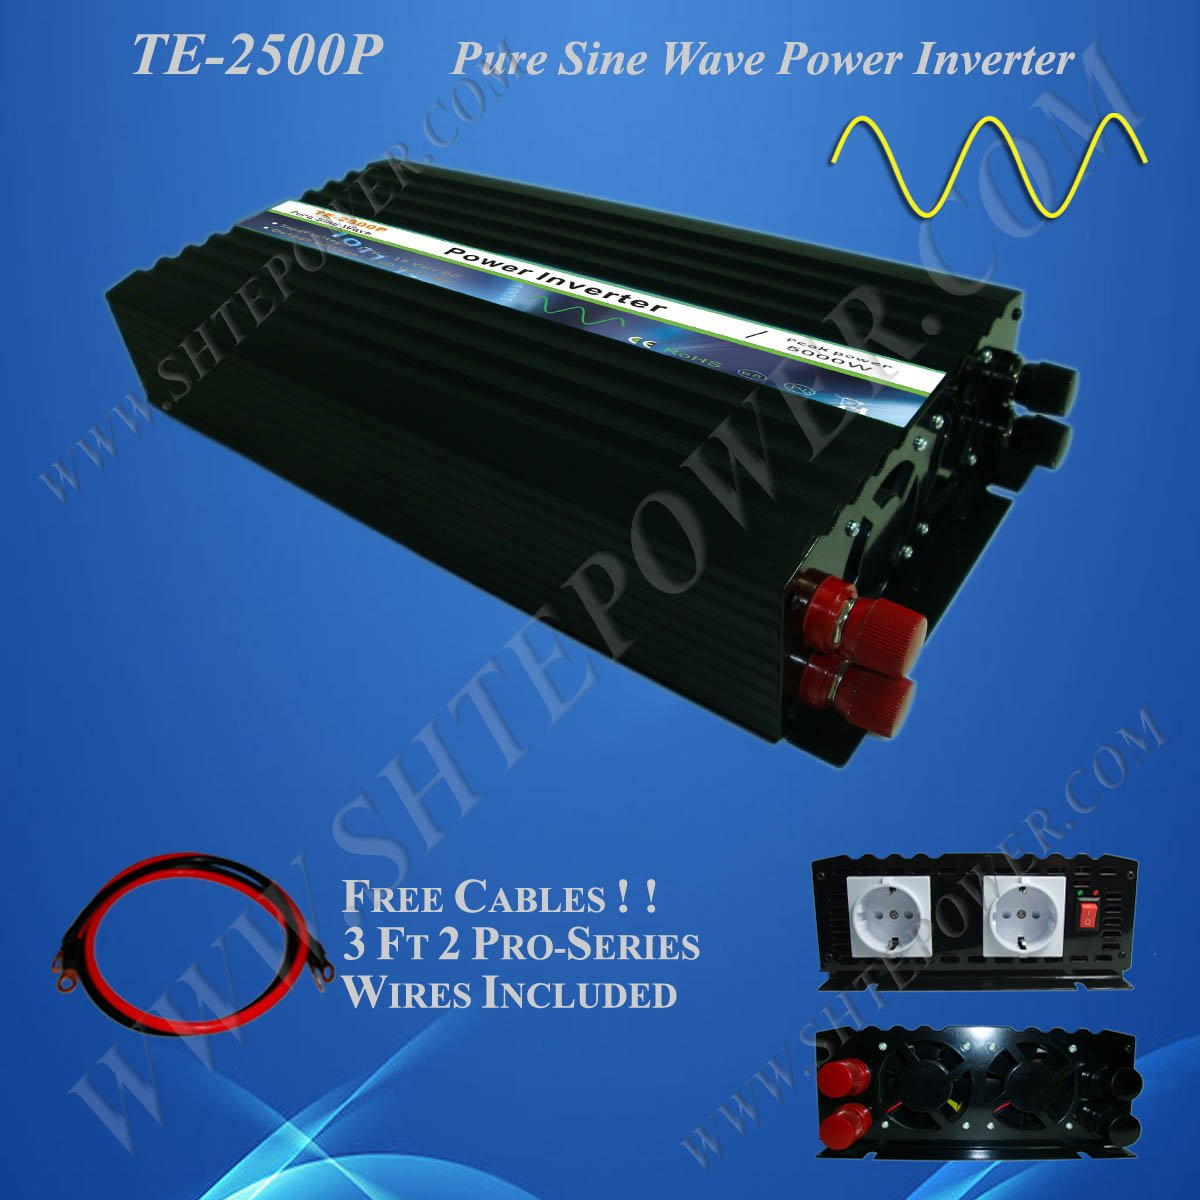 2500w solar inverter, off grid inverter, DC 24v to AC 220/230/240v, pure sine wave power inverter, hot items jamaica jamaica no problem